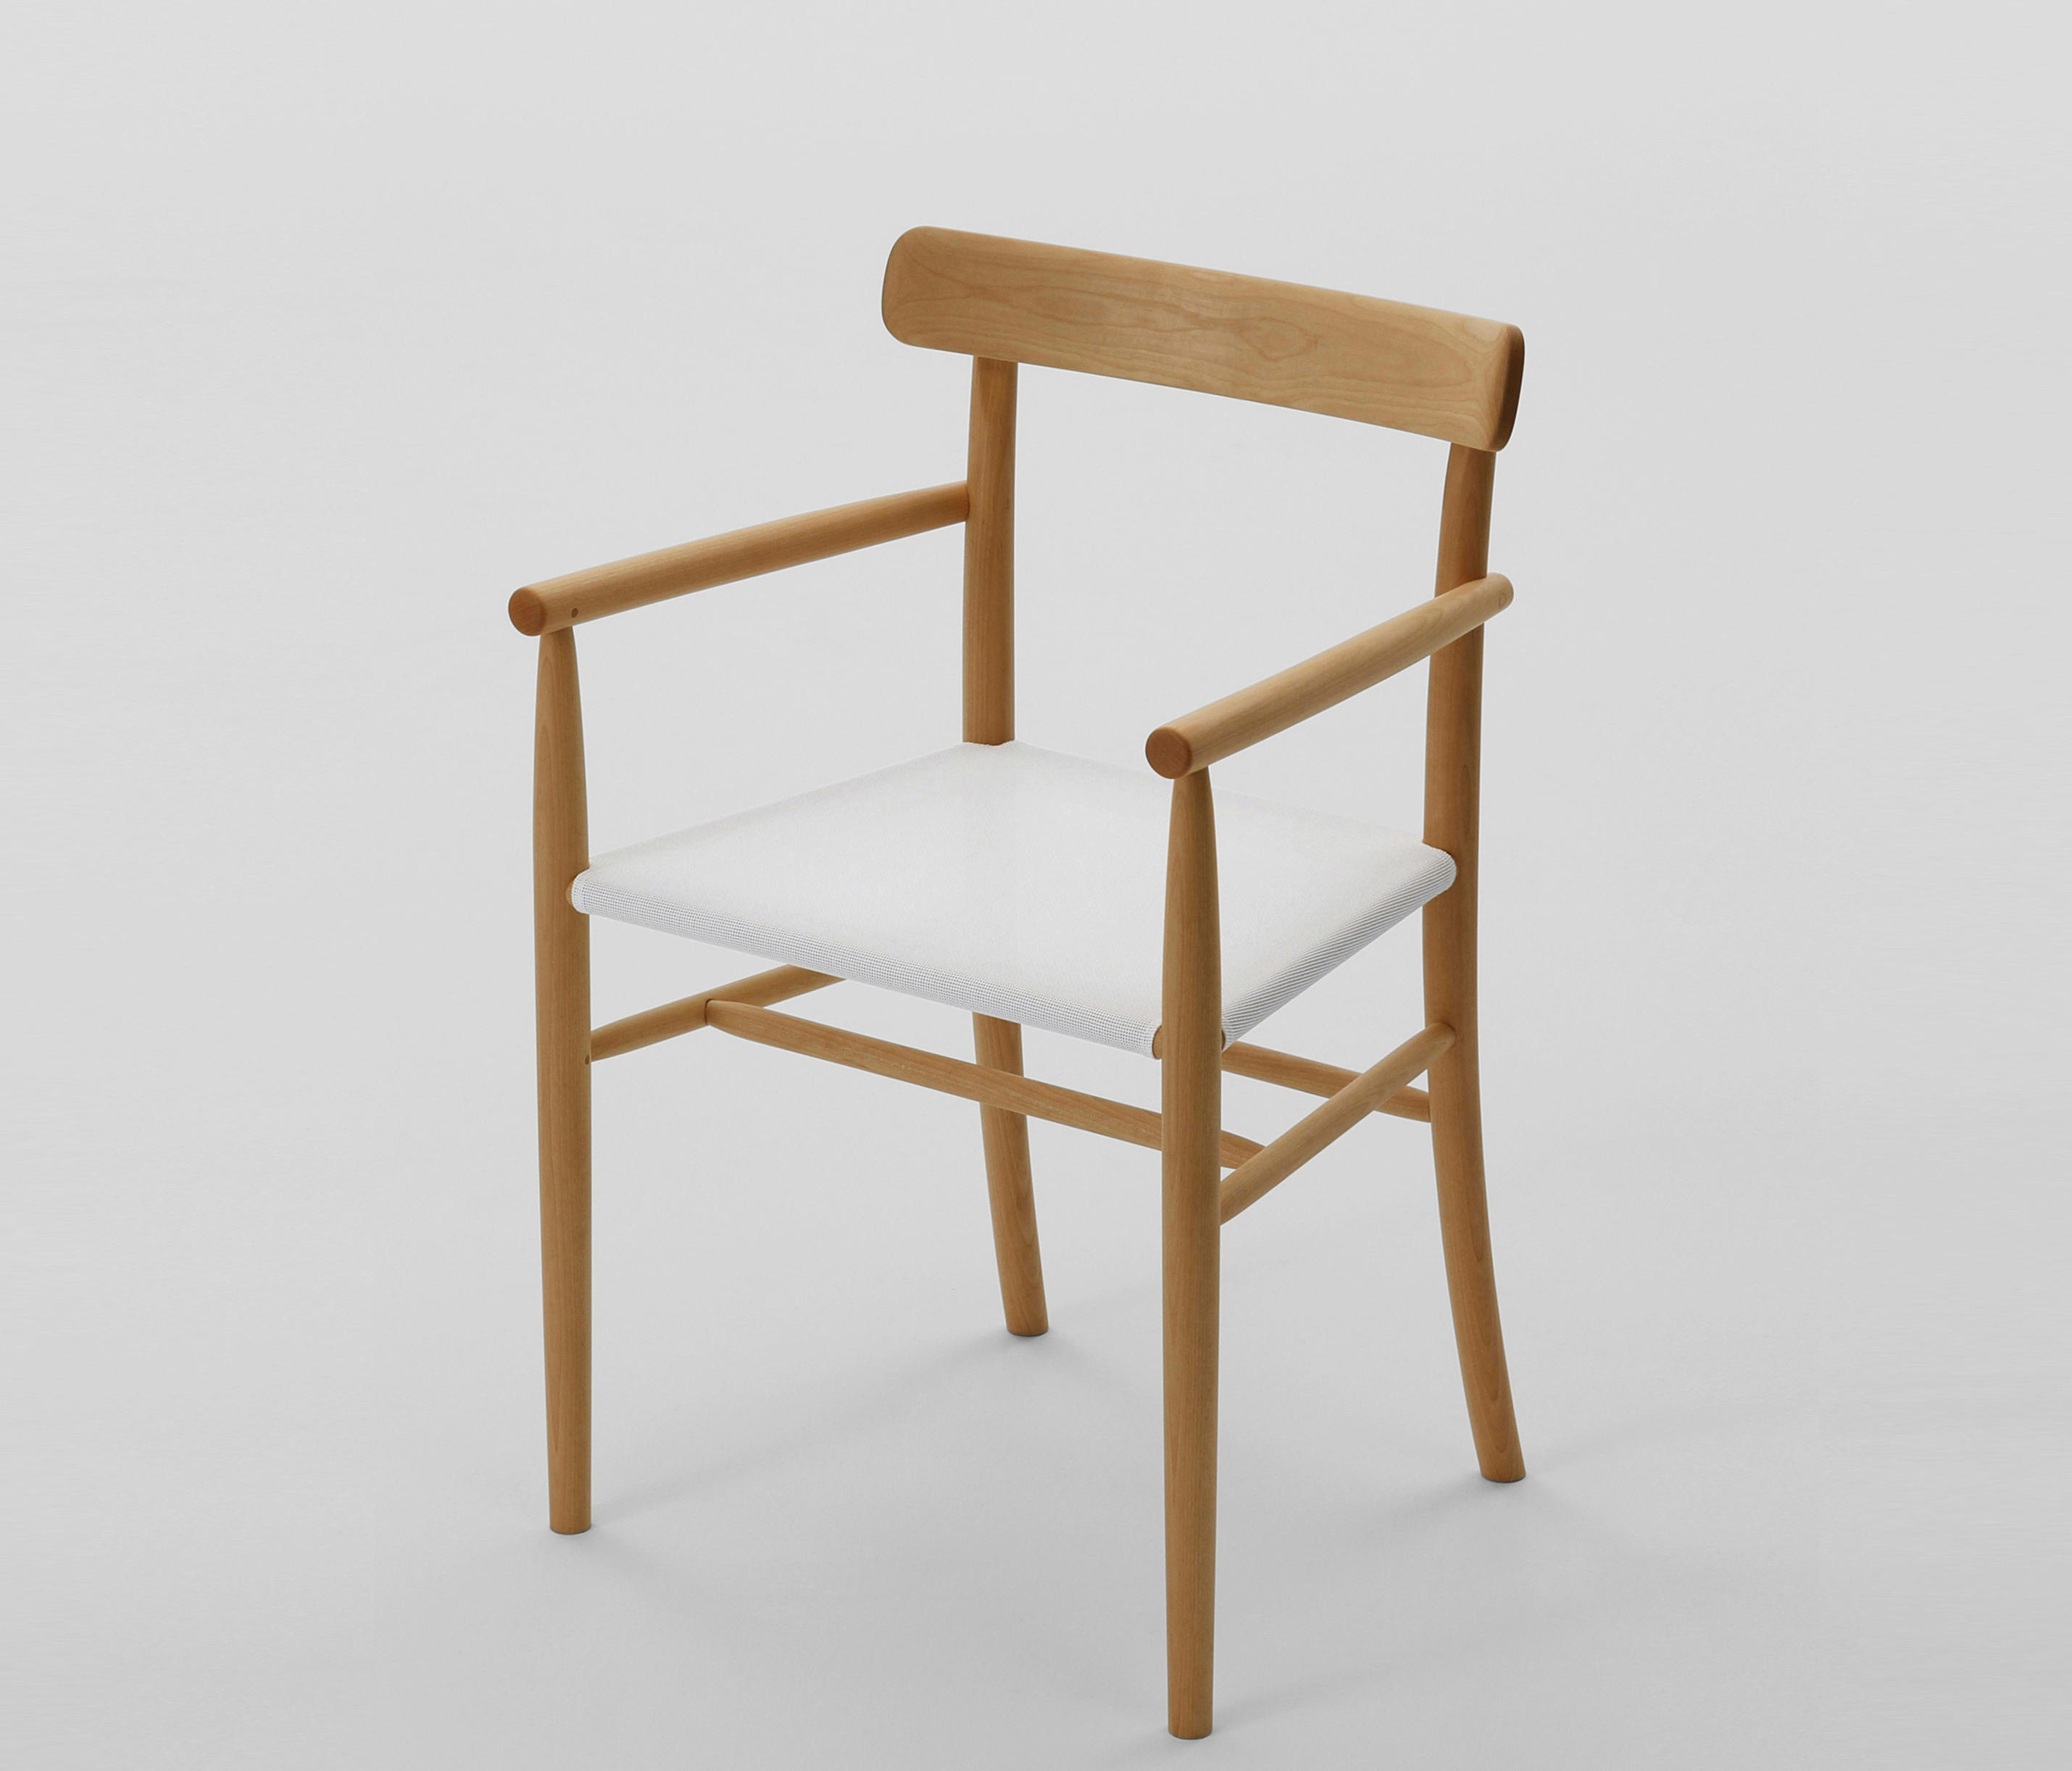 Charmant ... Lightwood Arm Chair (Mesh Seat) By MARUNI | Chairs ...